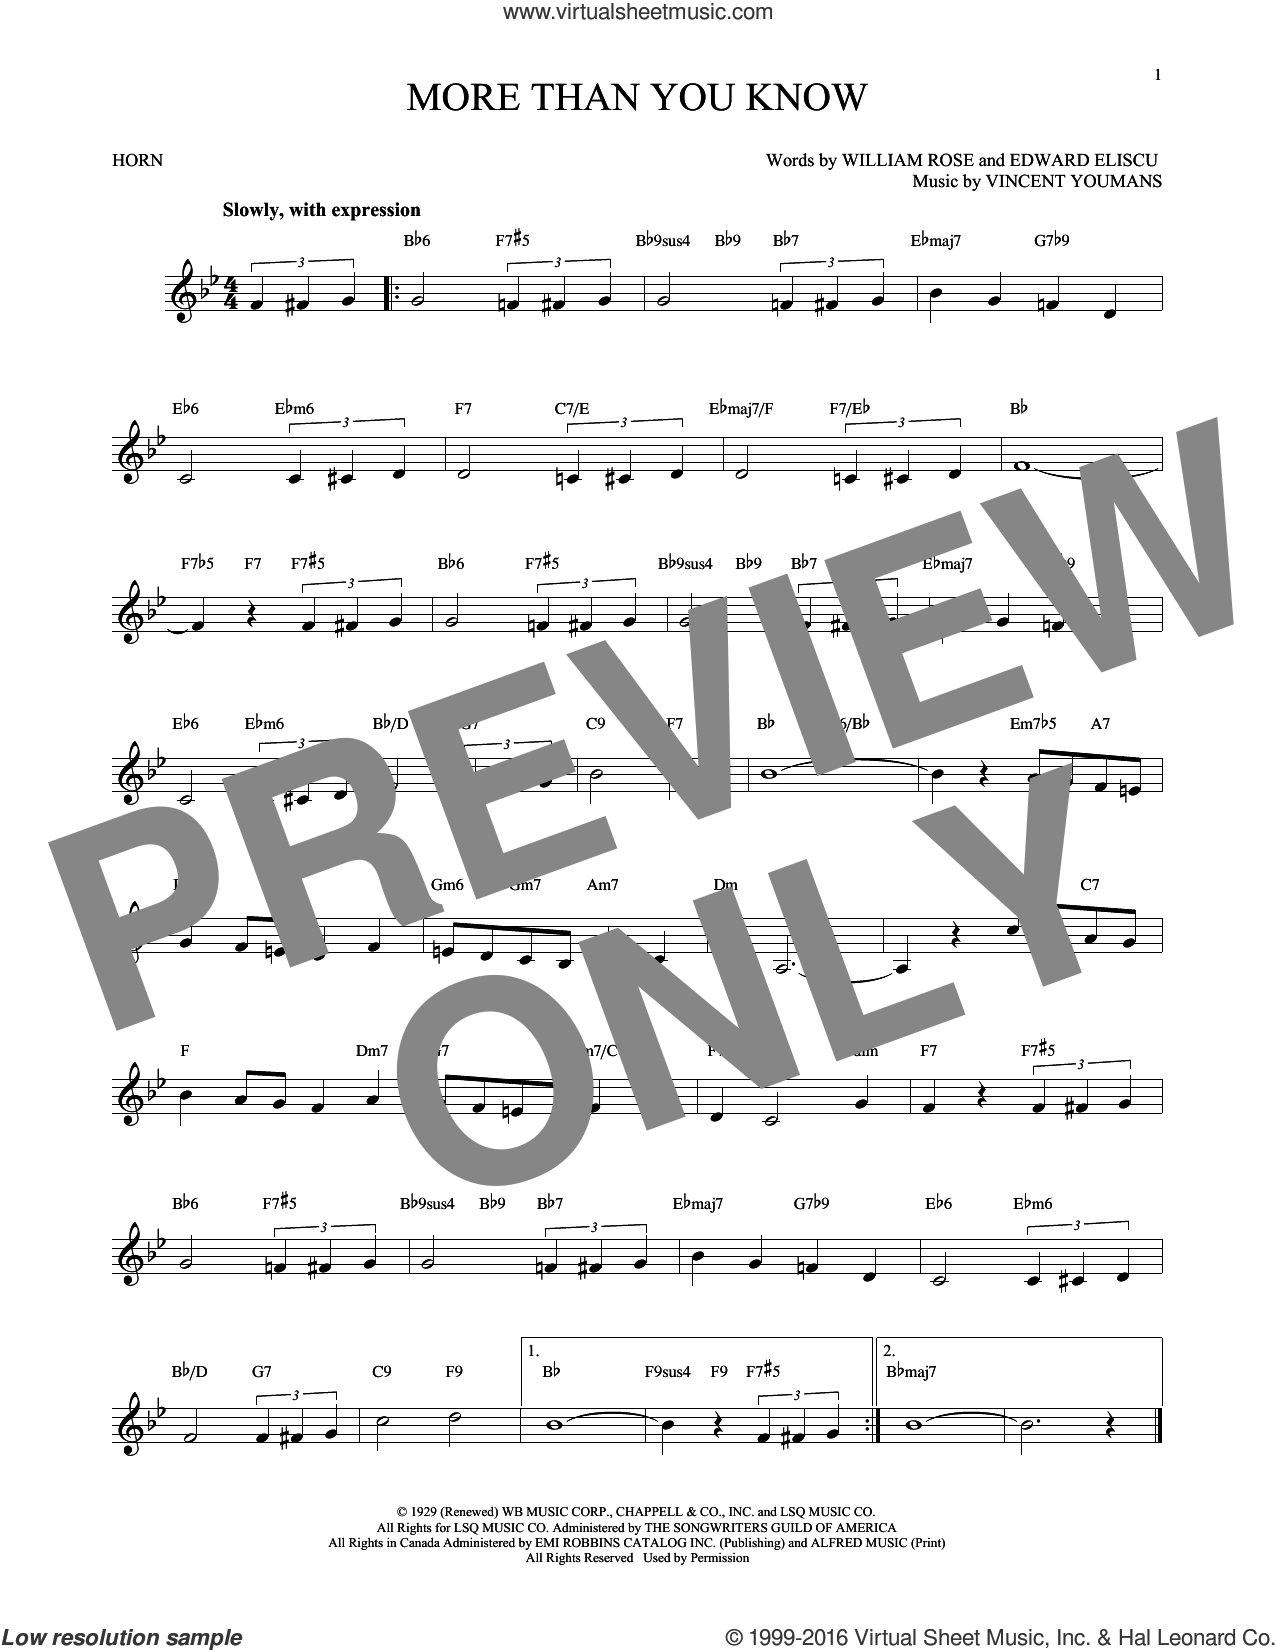 More Than You Know sheet music for horn solo by Vincent Youmans, Edward Eliscu and William Rose, intermediate skill level